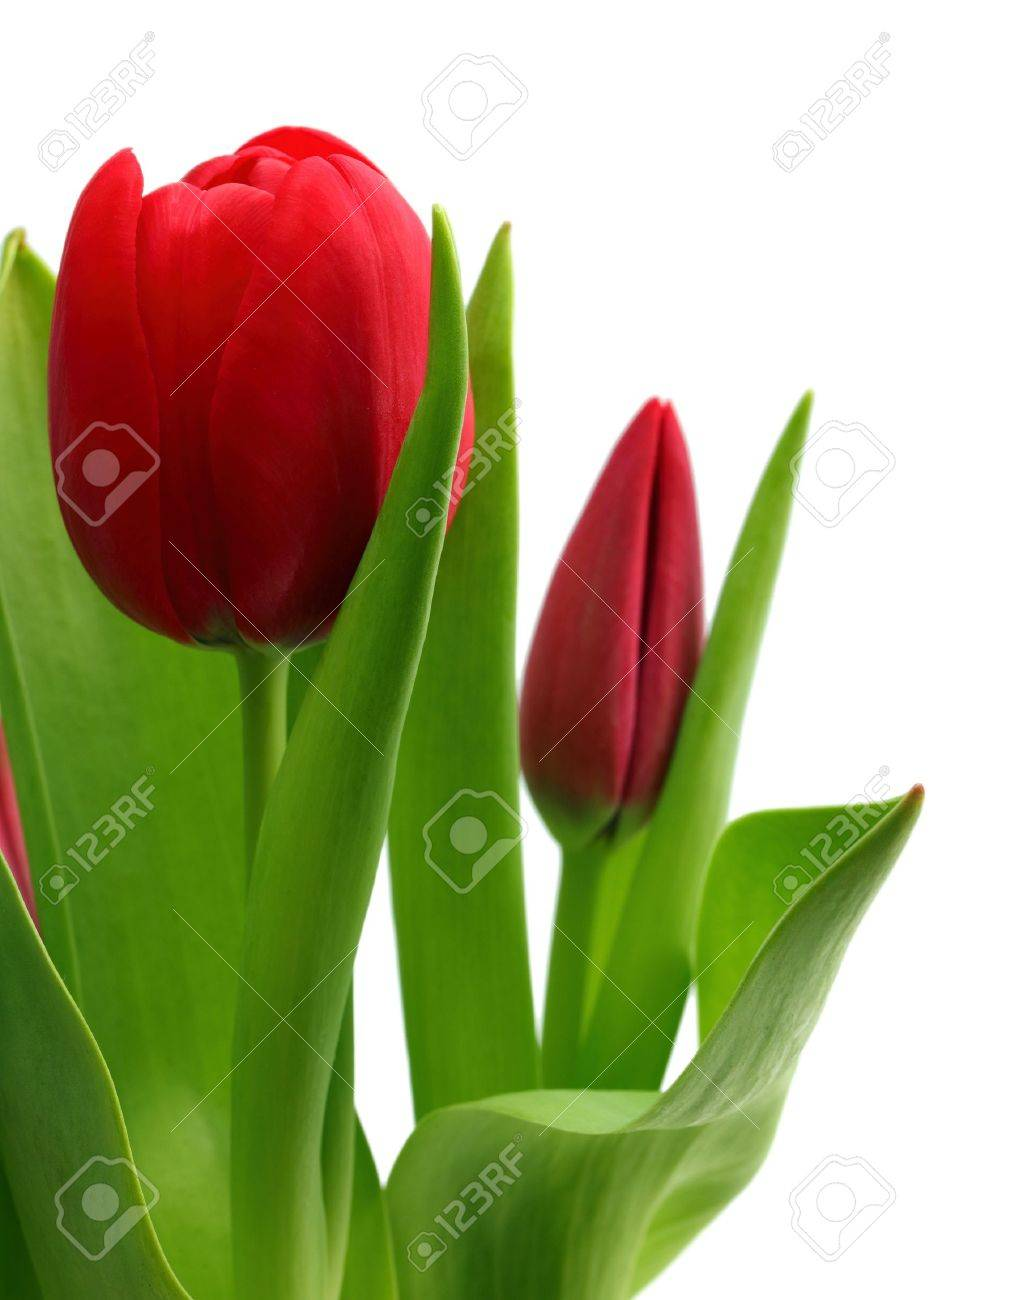 bouquet of red tulips close-up isolated on white - 12827113